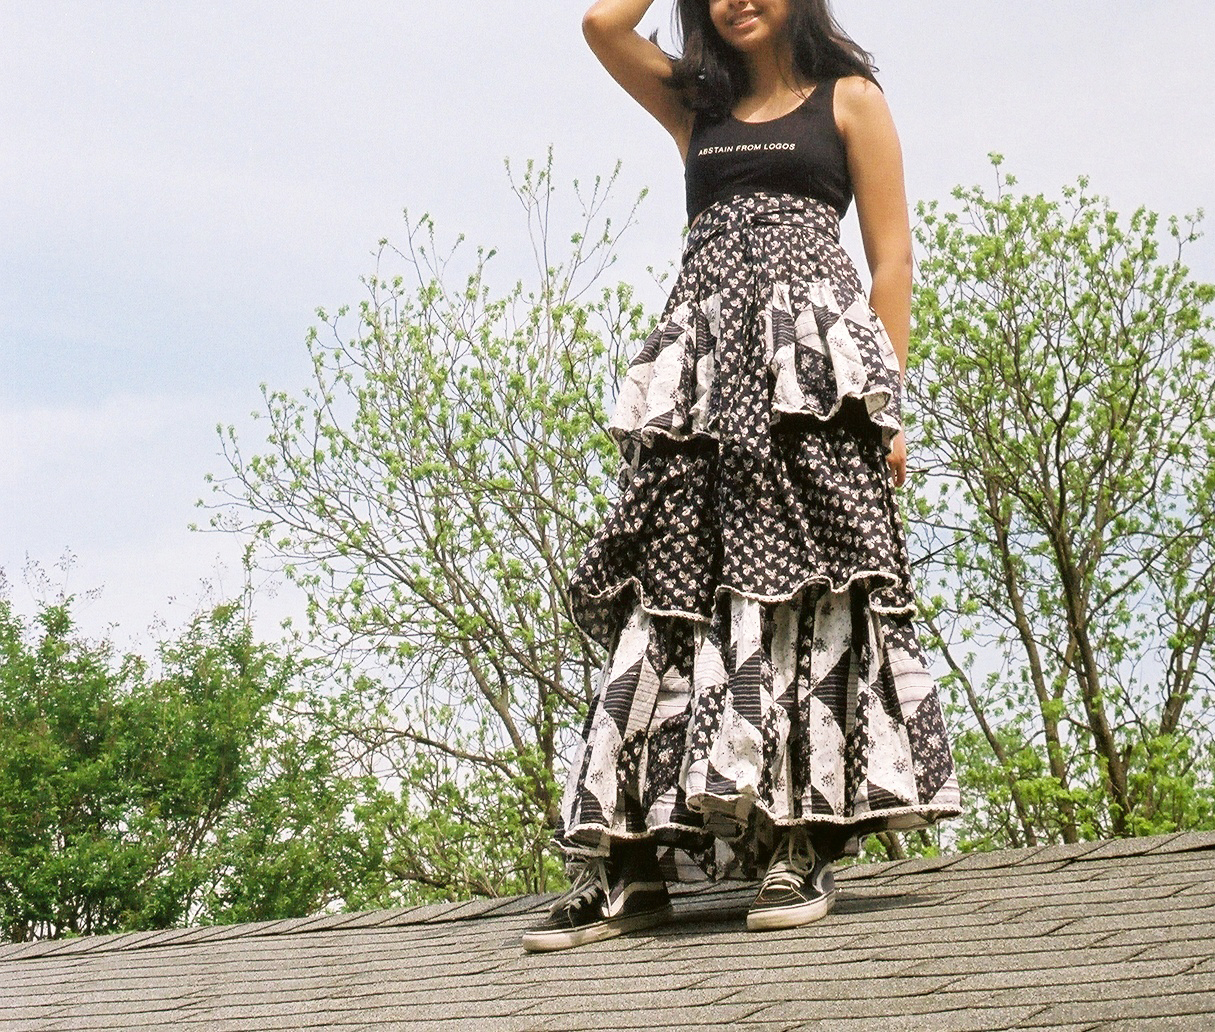 the sweetest skirt!! but sneakers again make it casual